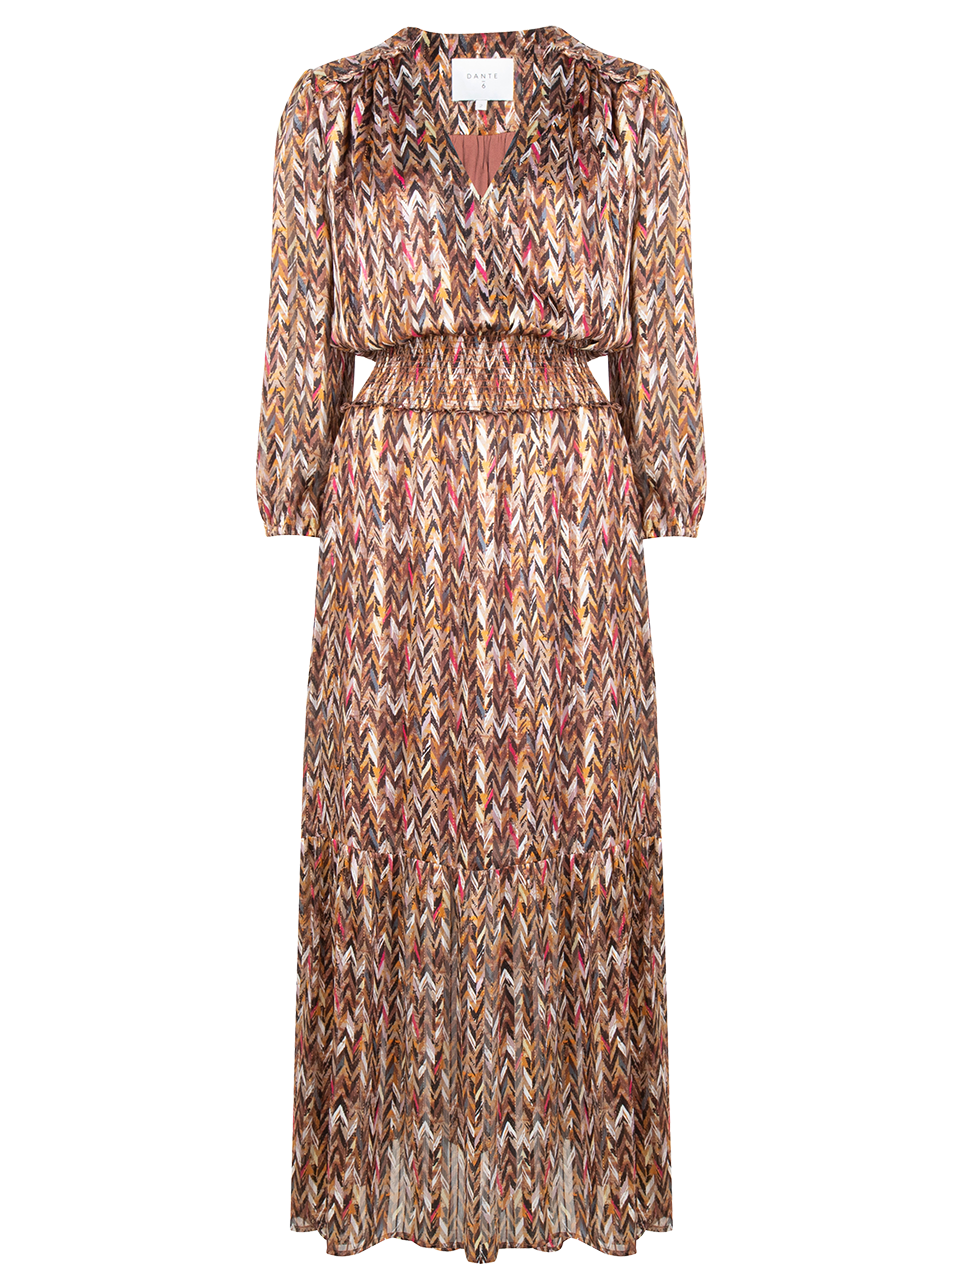 Bardon printed chevron dress-1